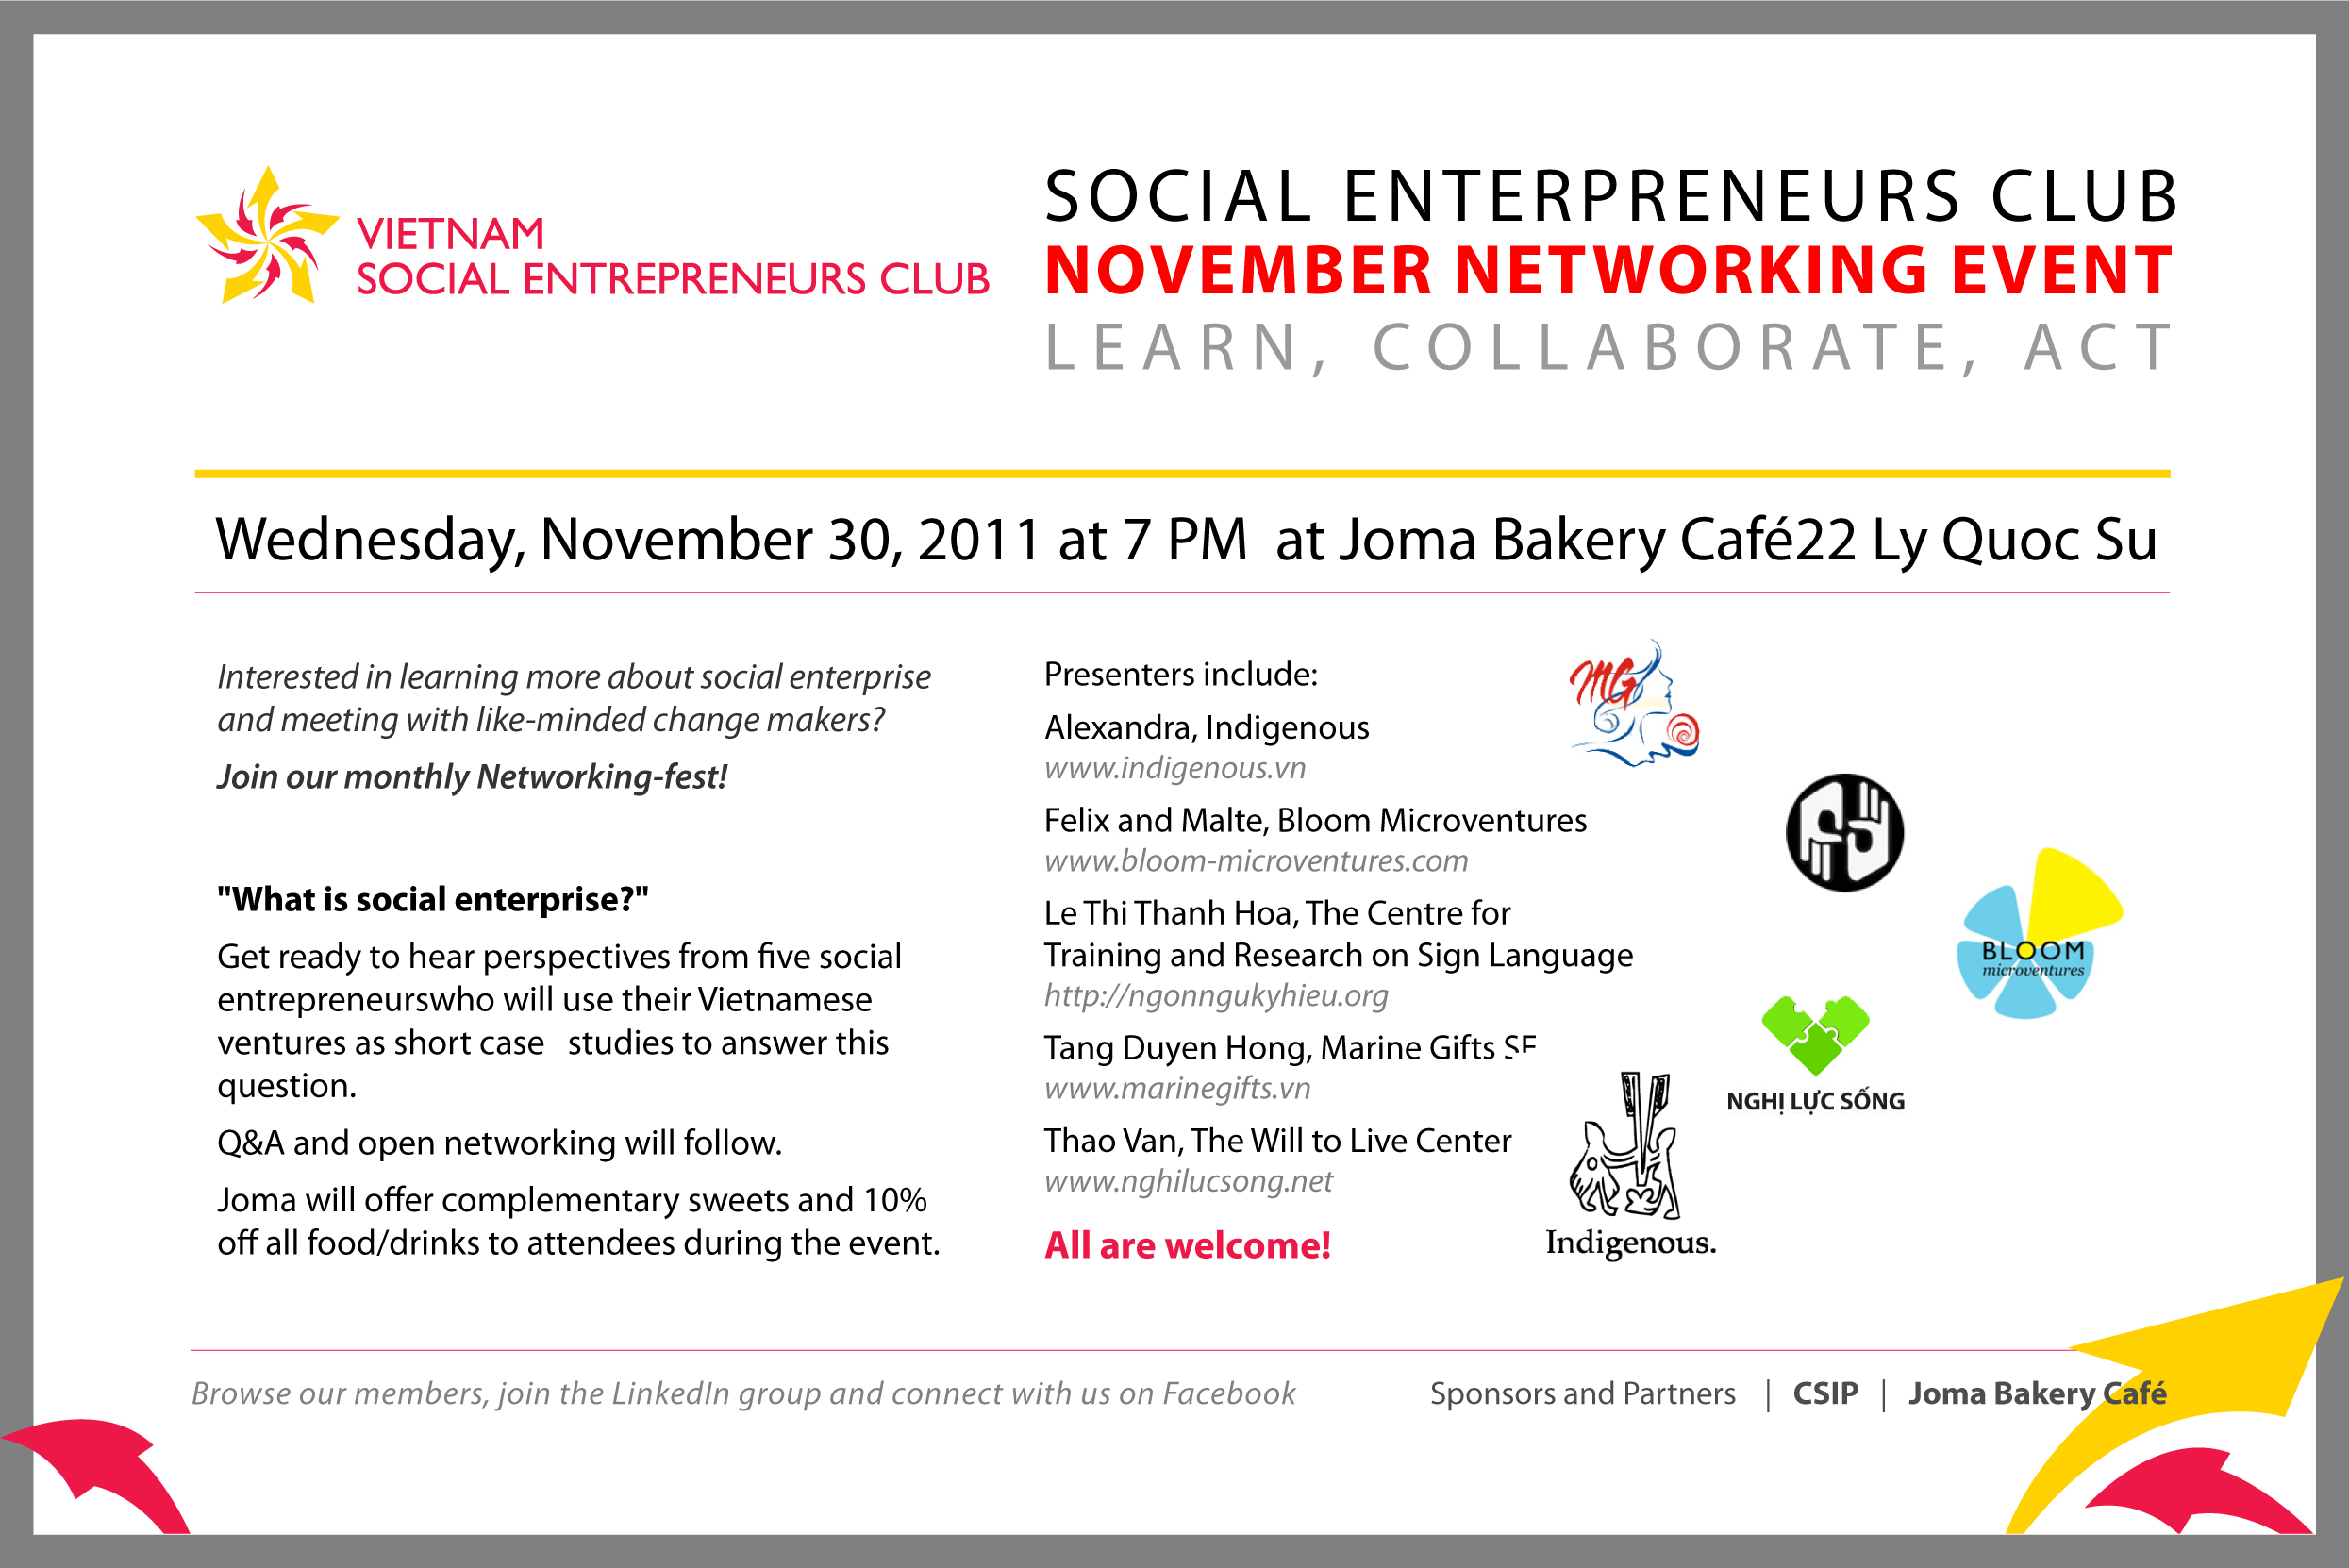 Vietnam Social Entrepreneurs Club Nov 30th Networking Fest